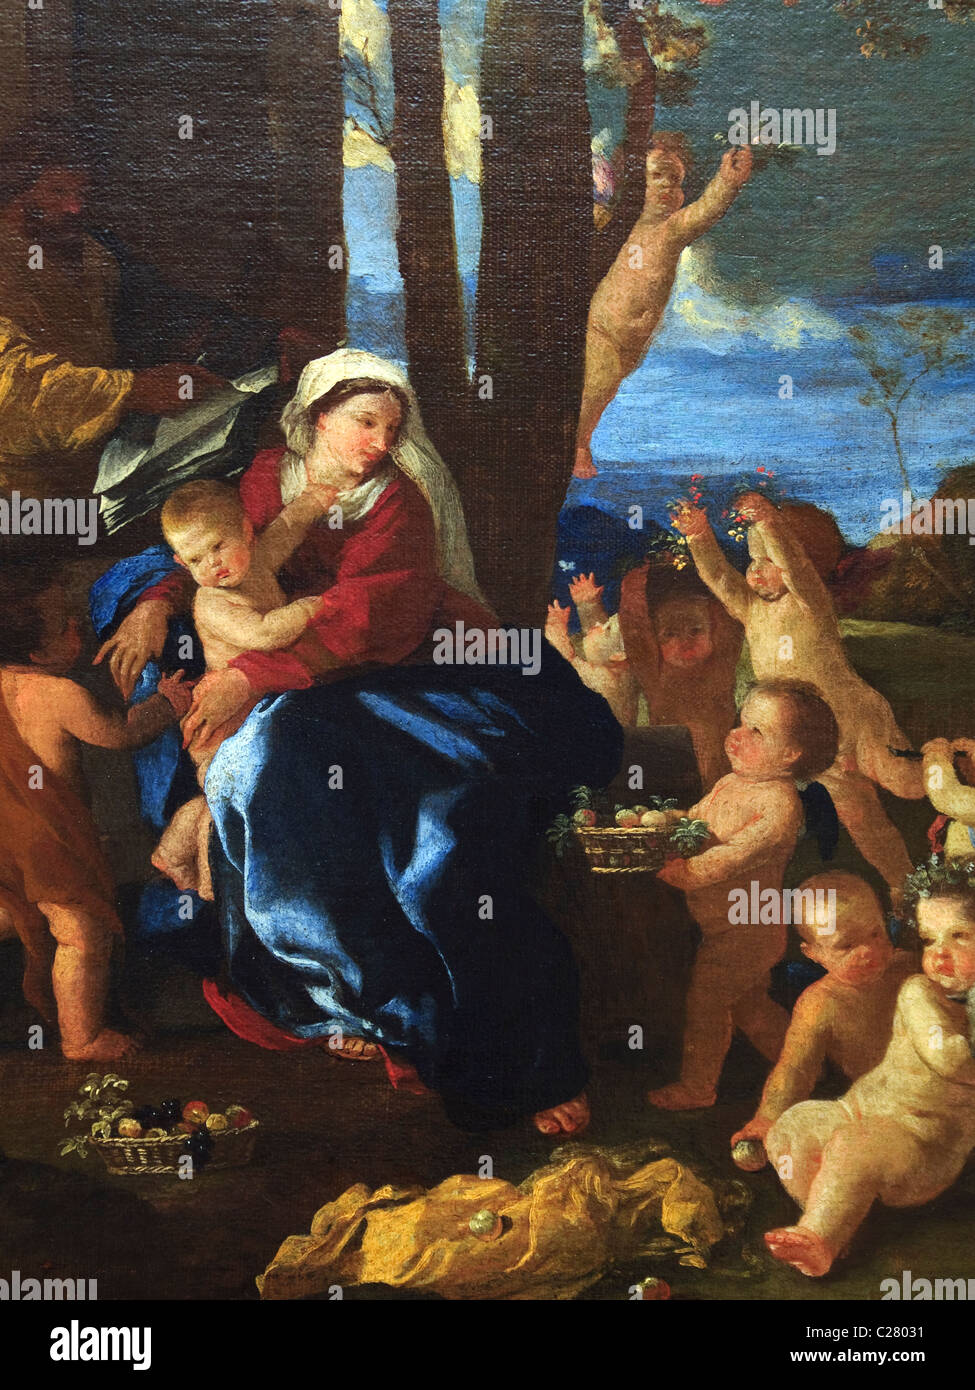 Detail: The Rest on the Flight into Egypt, ca. 1627, by Nicolas Poussin, - Stock Image